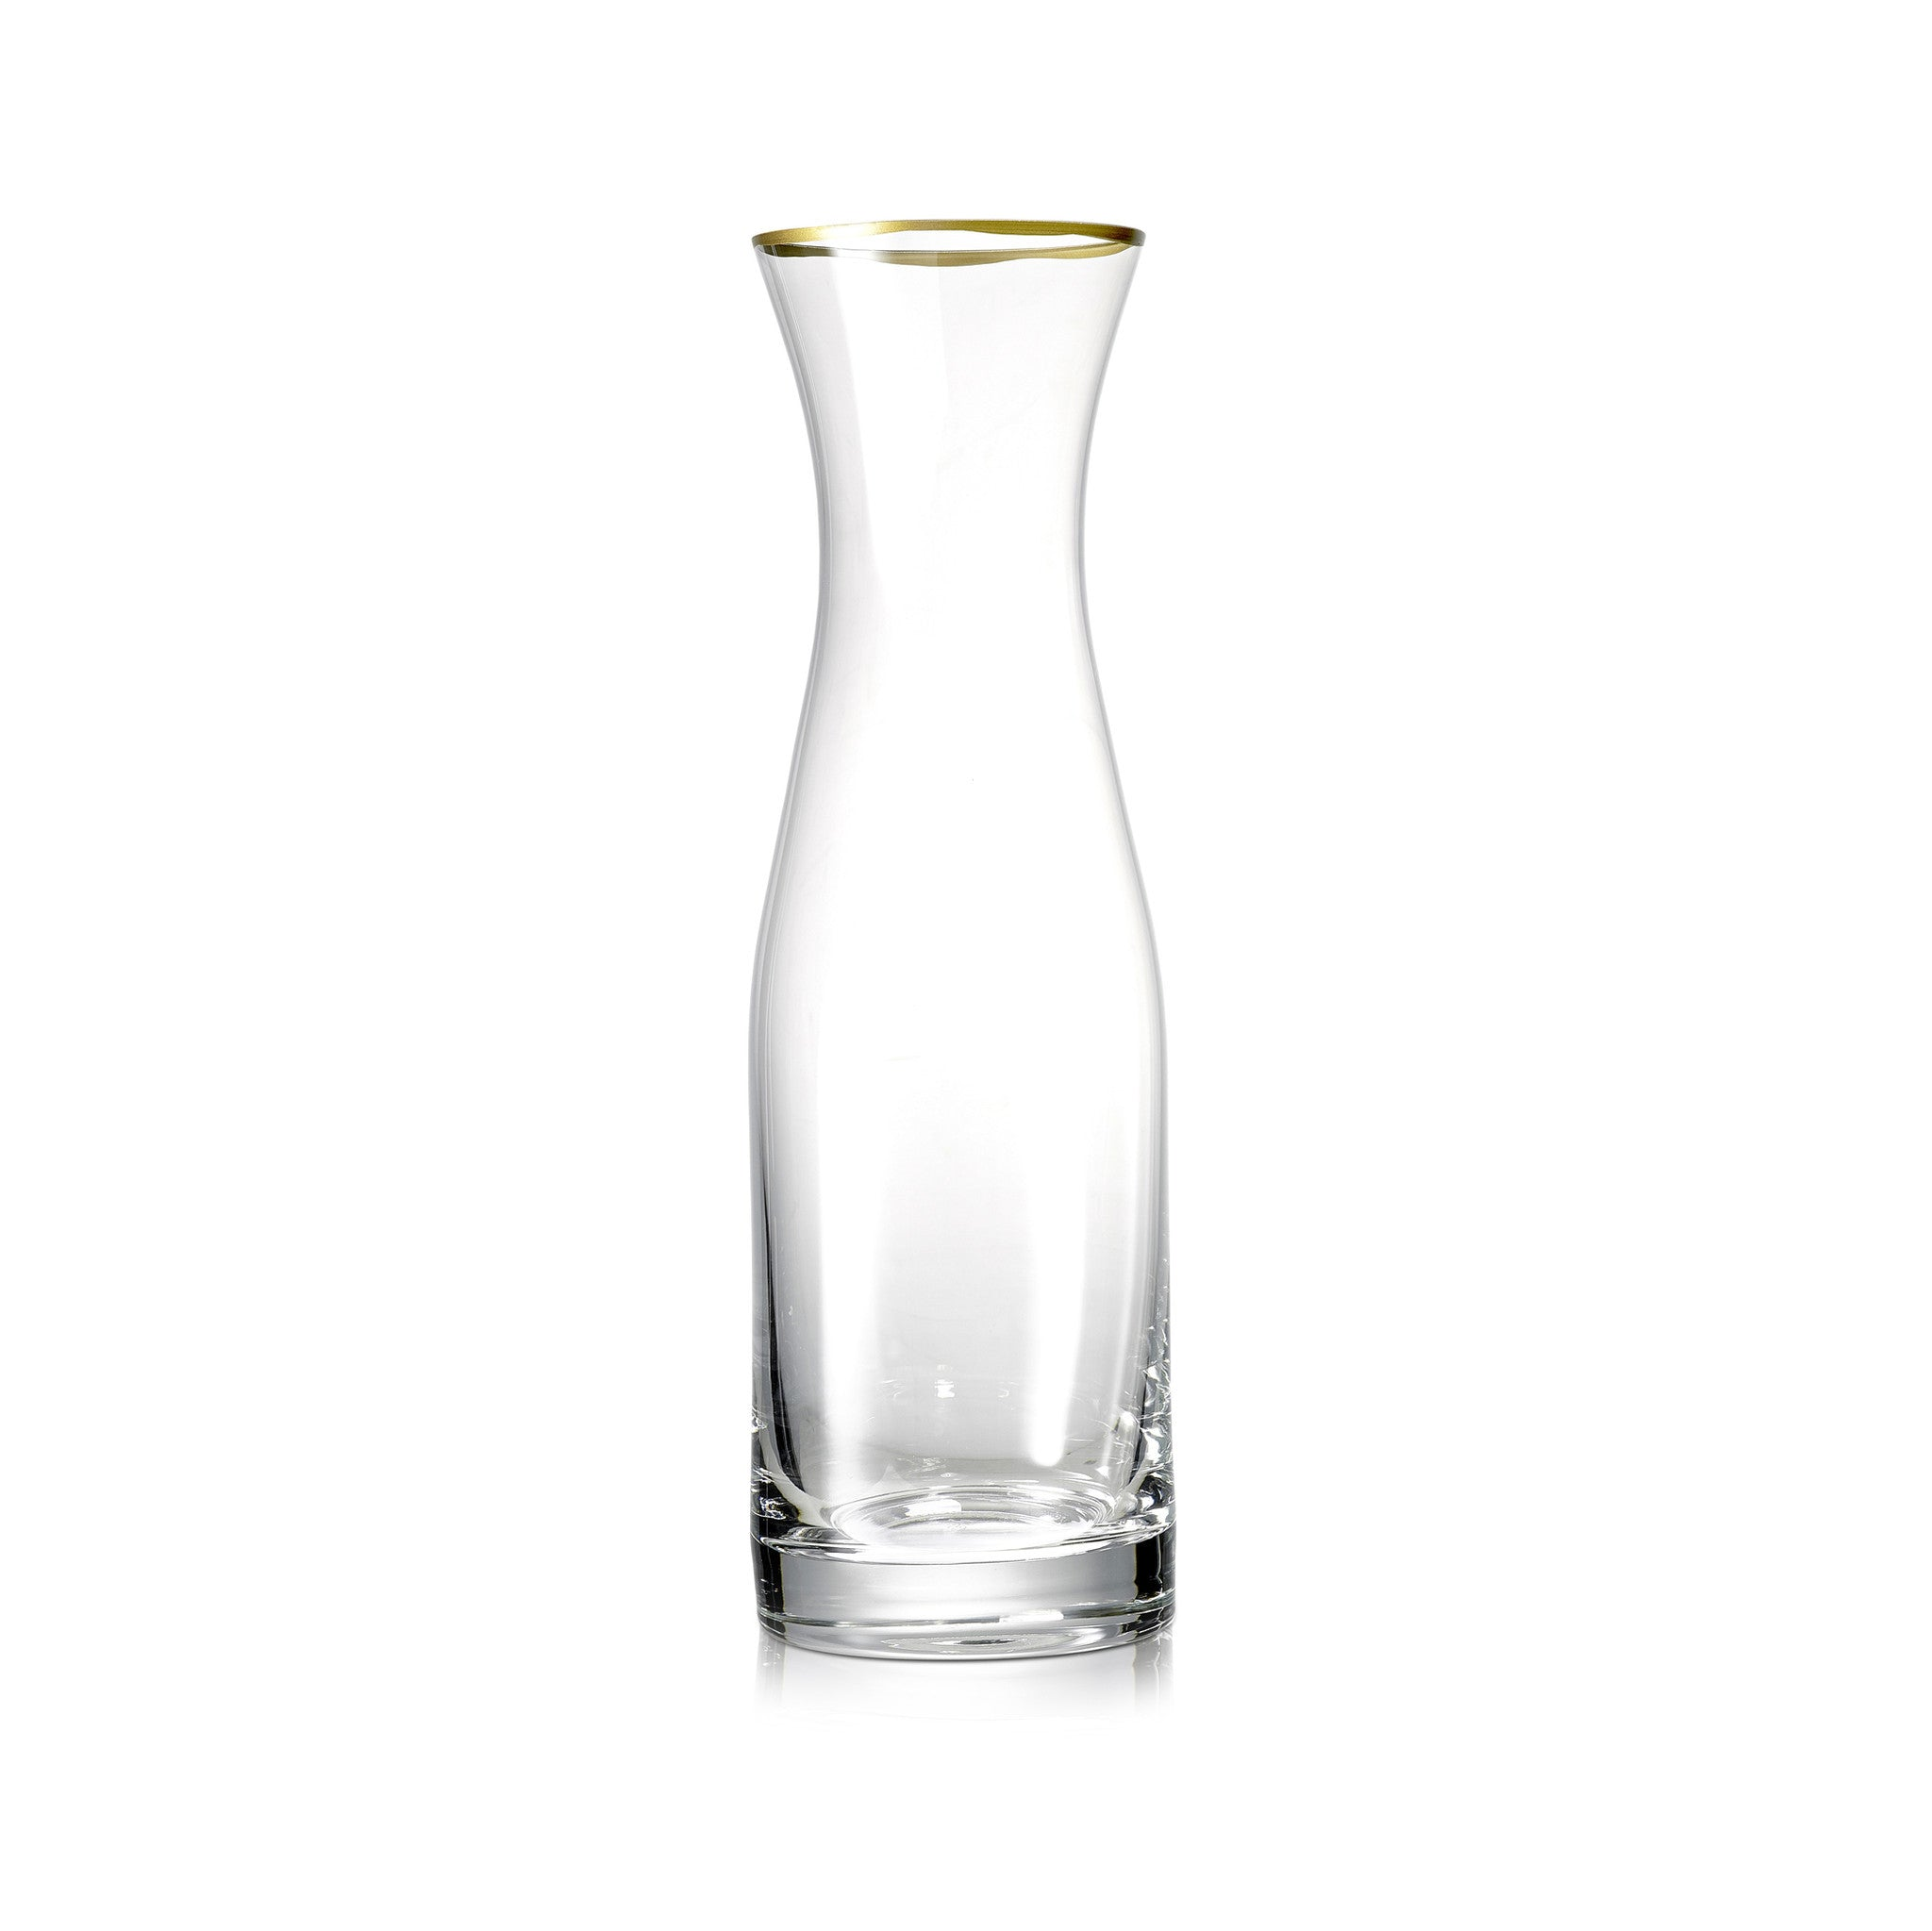 S&B Glass Water Carafe with Gold Rim